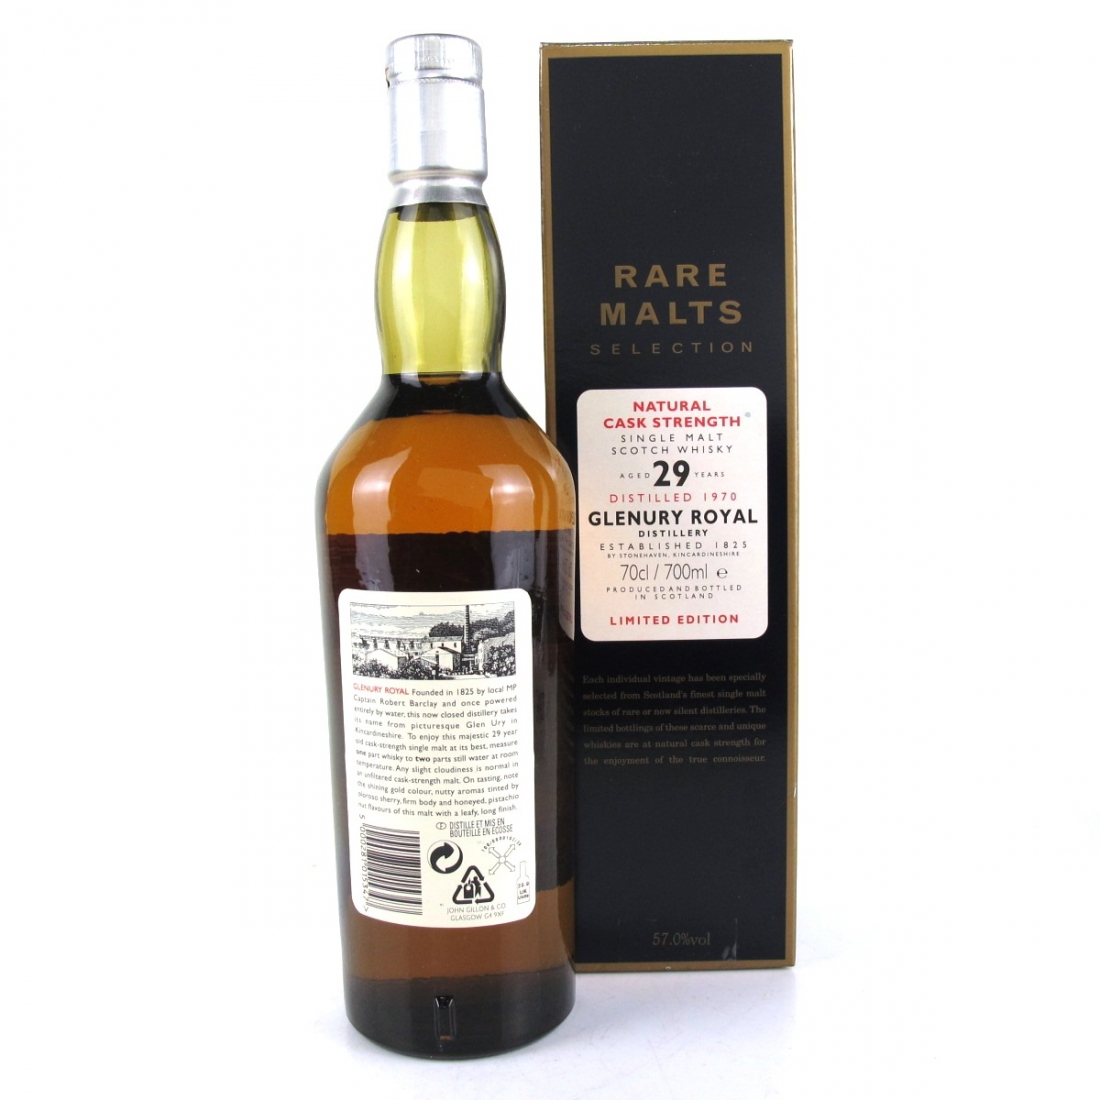 Glenury Royal 1970 Rare Malt 29 Year Old / 57%